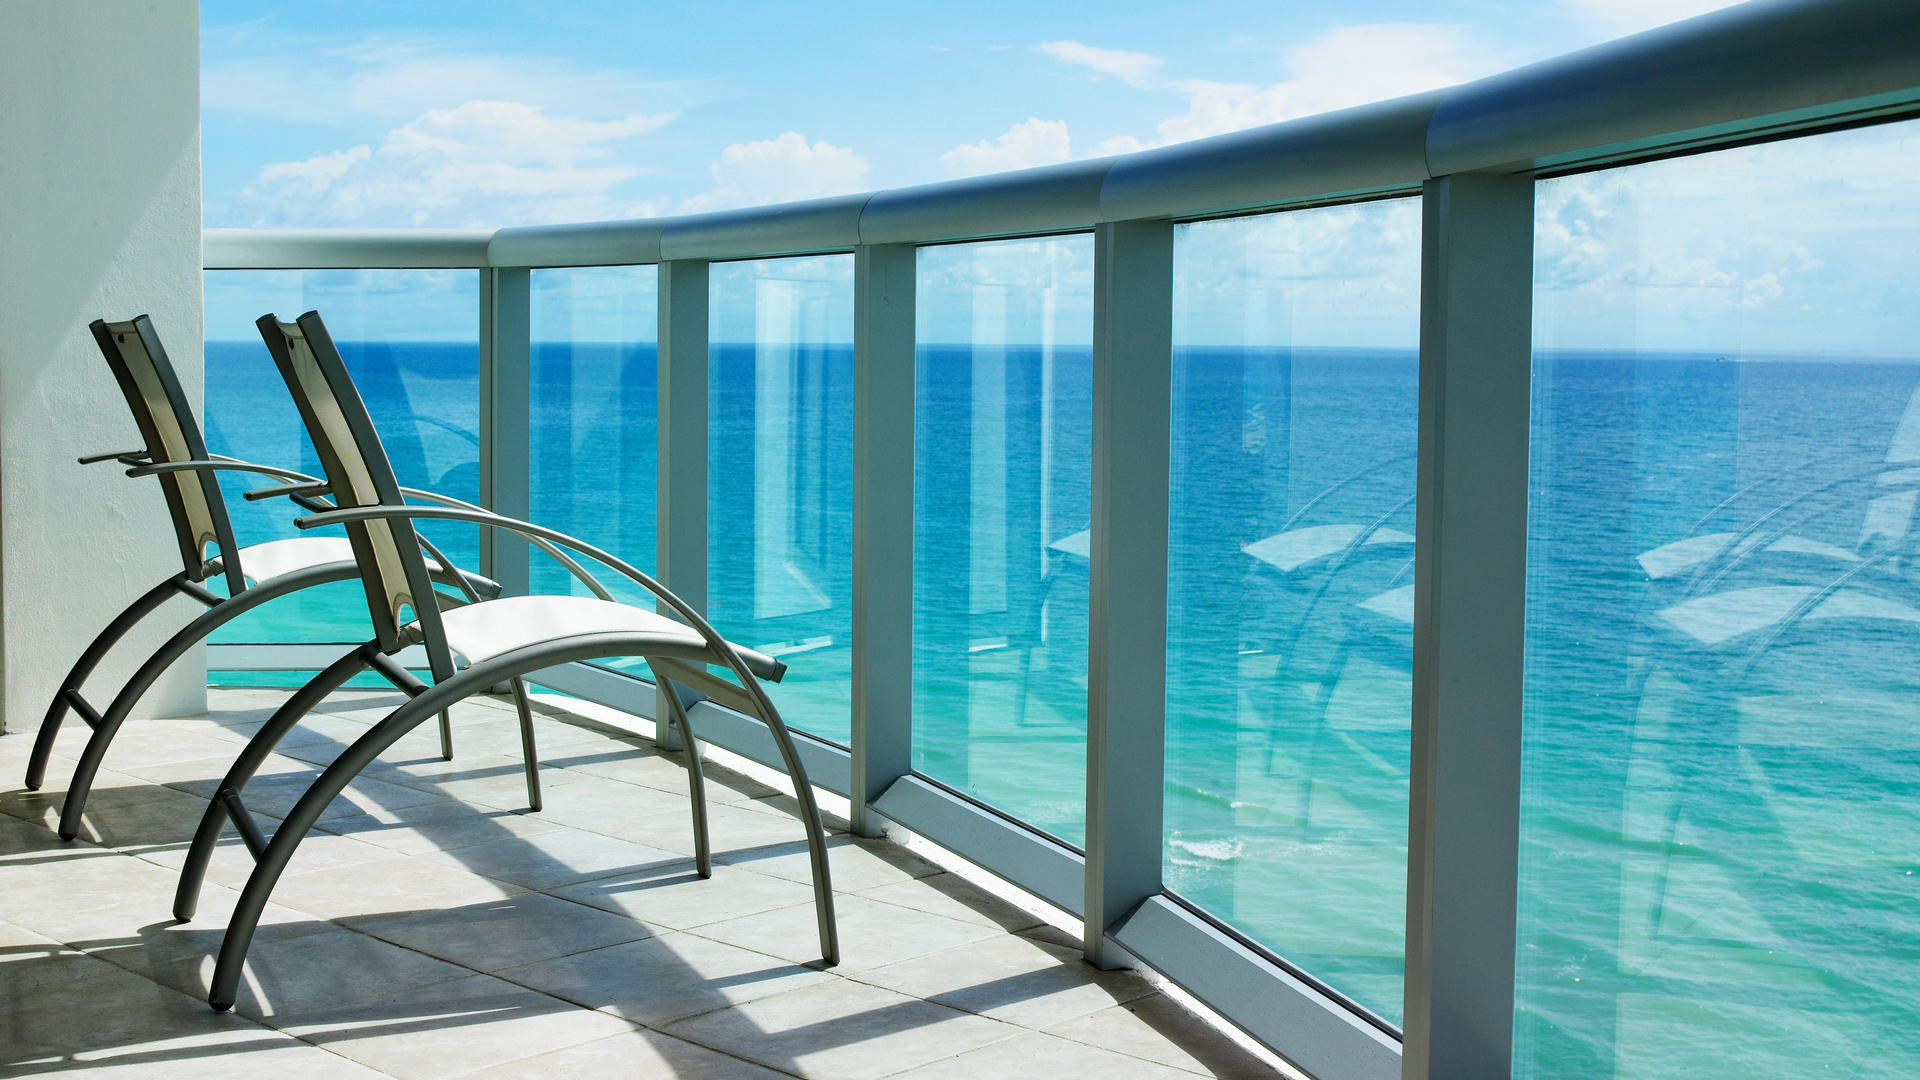 Balcony overlooking crystal blue ocean waters